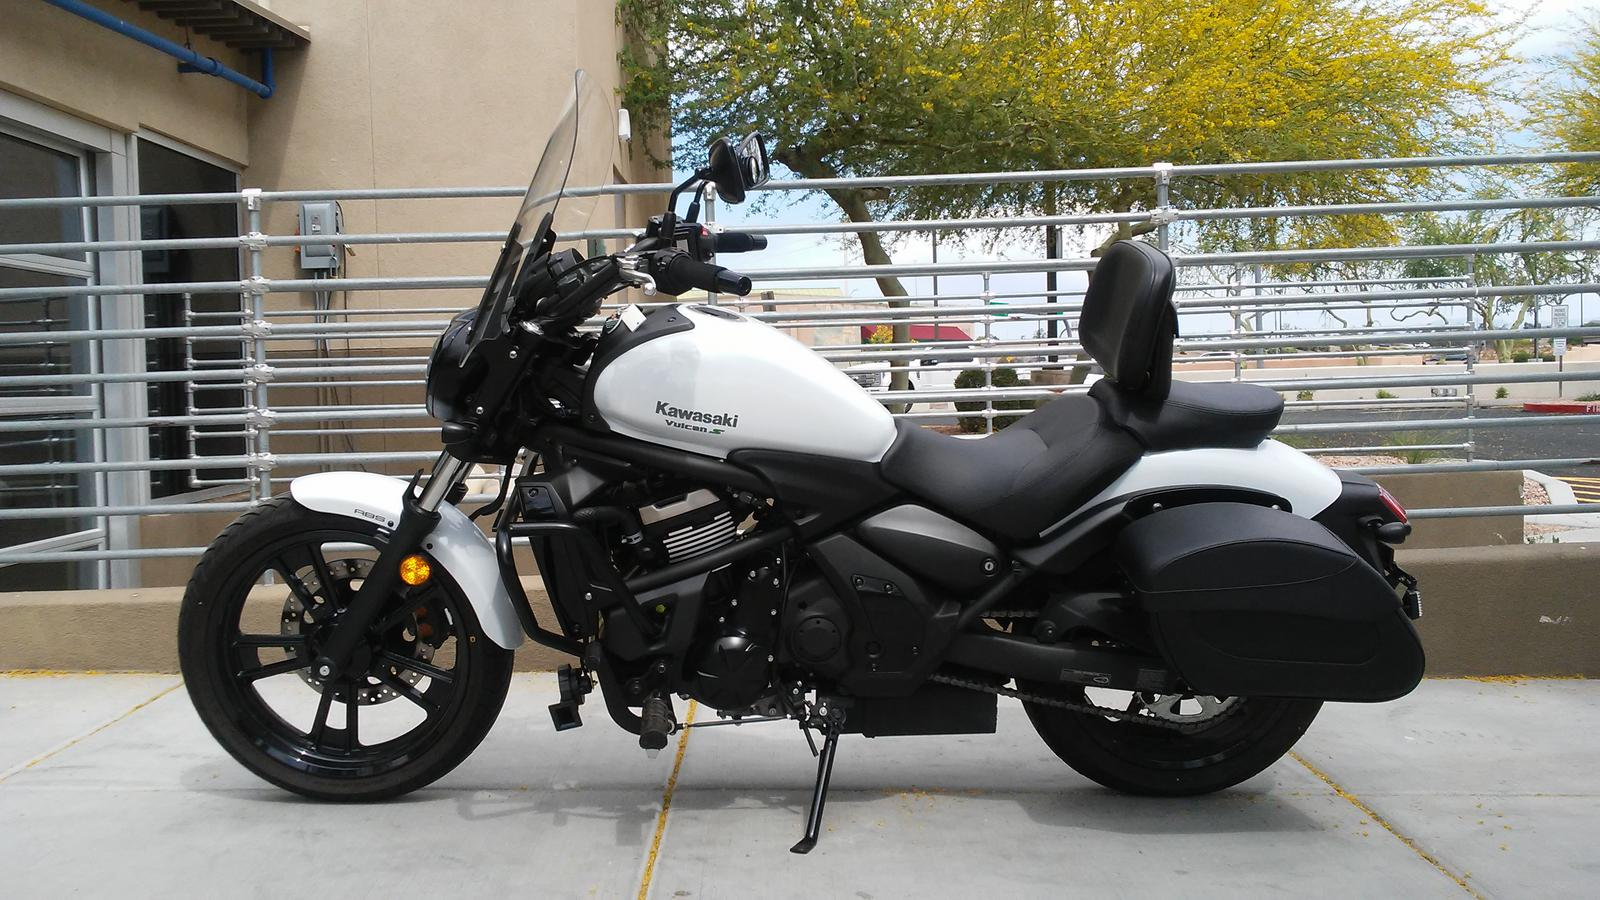 2018 Kawasaki Vulcan S Abs For Sale In Peoria Az Go Az